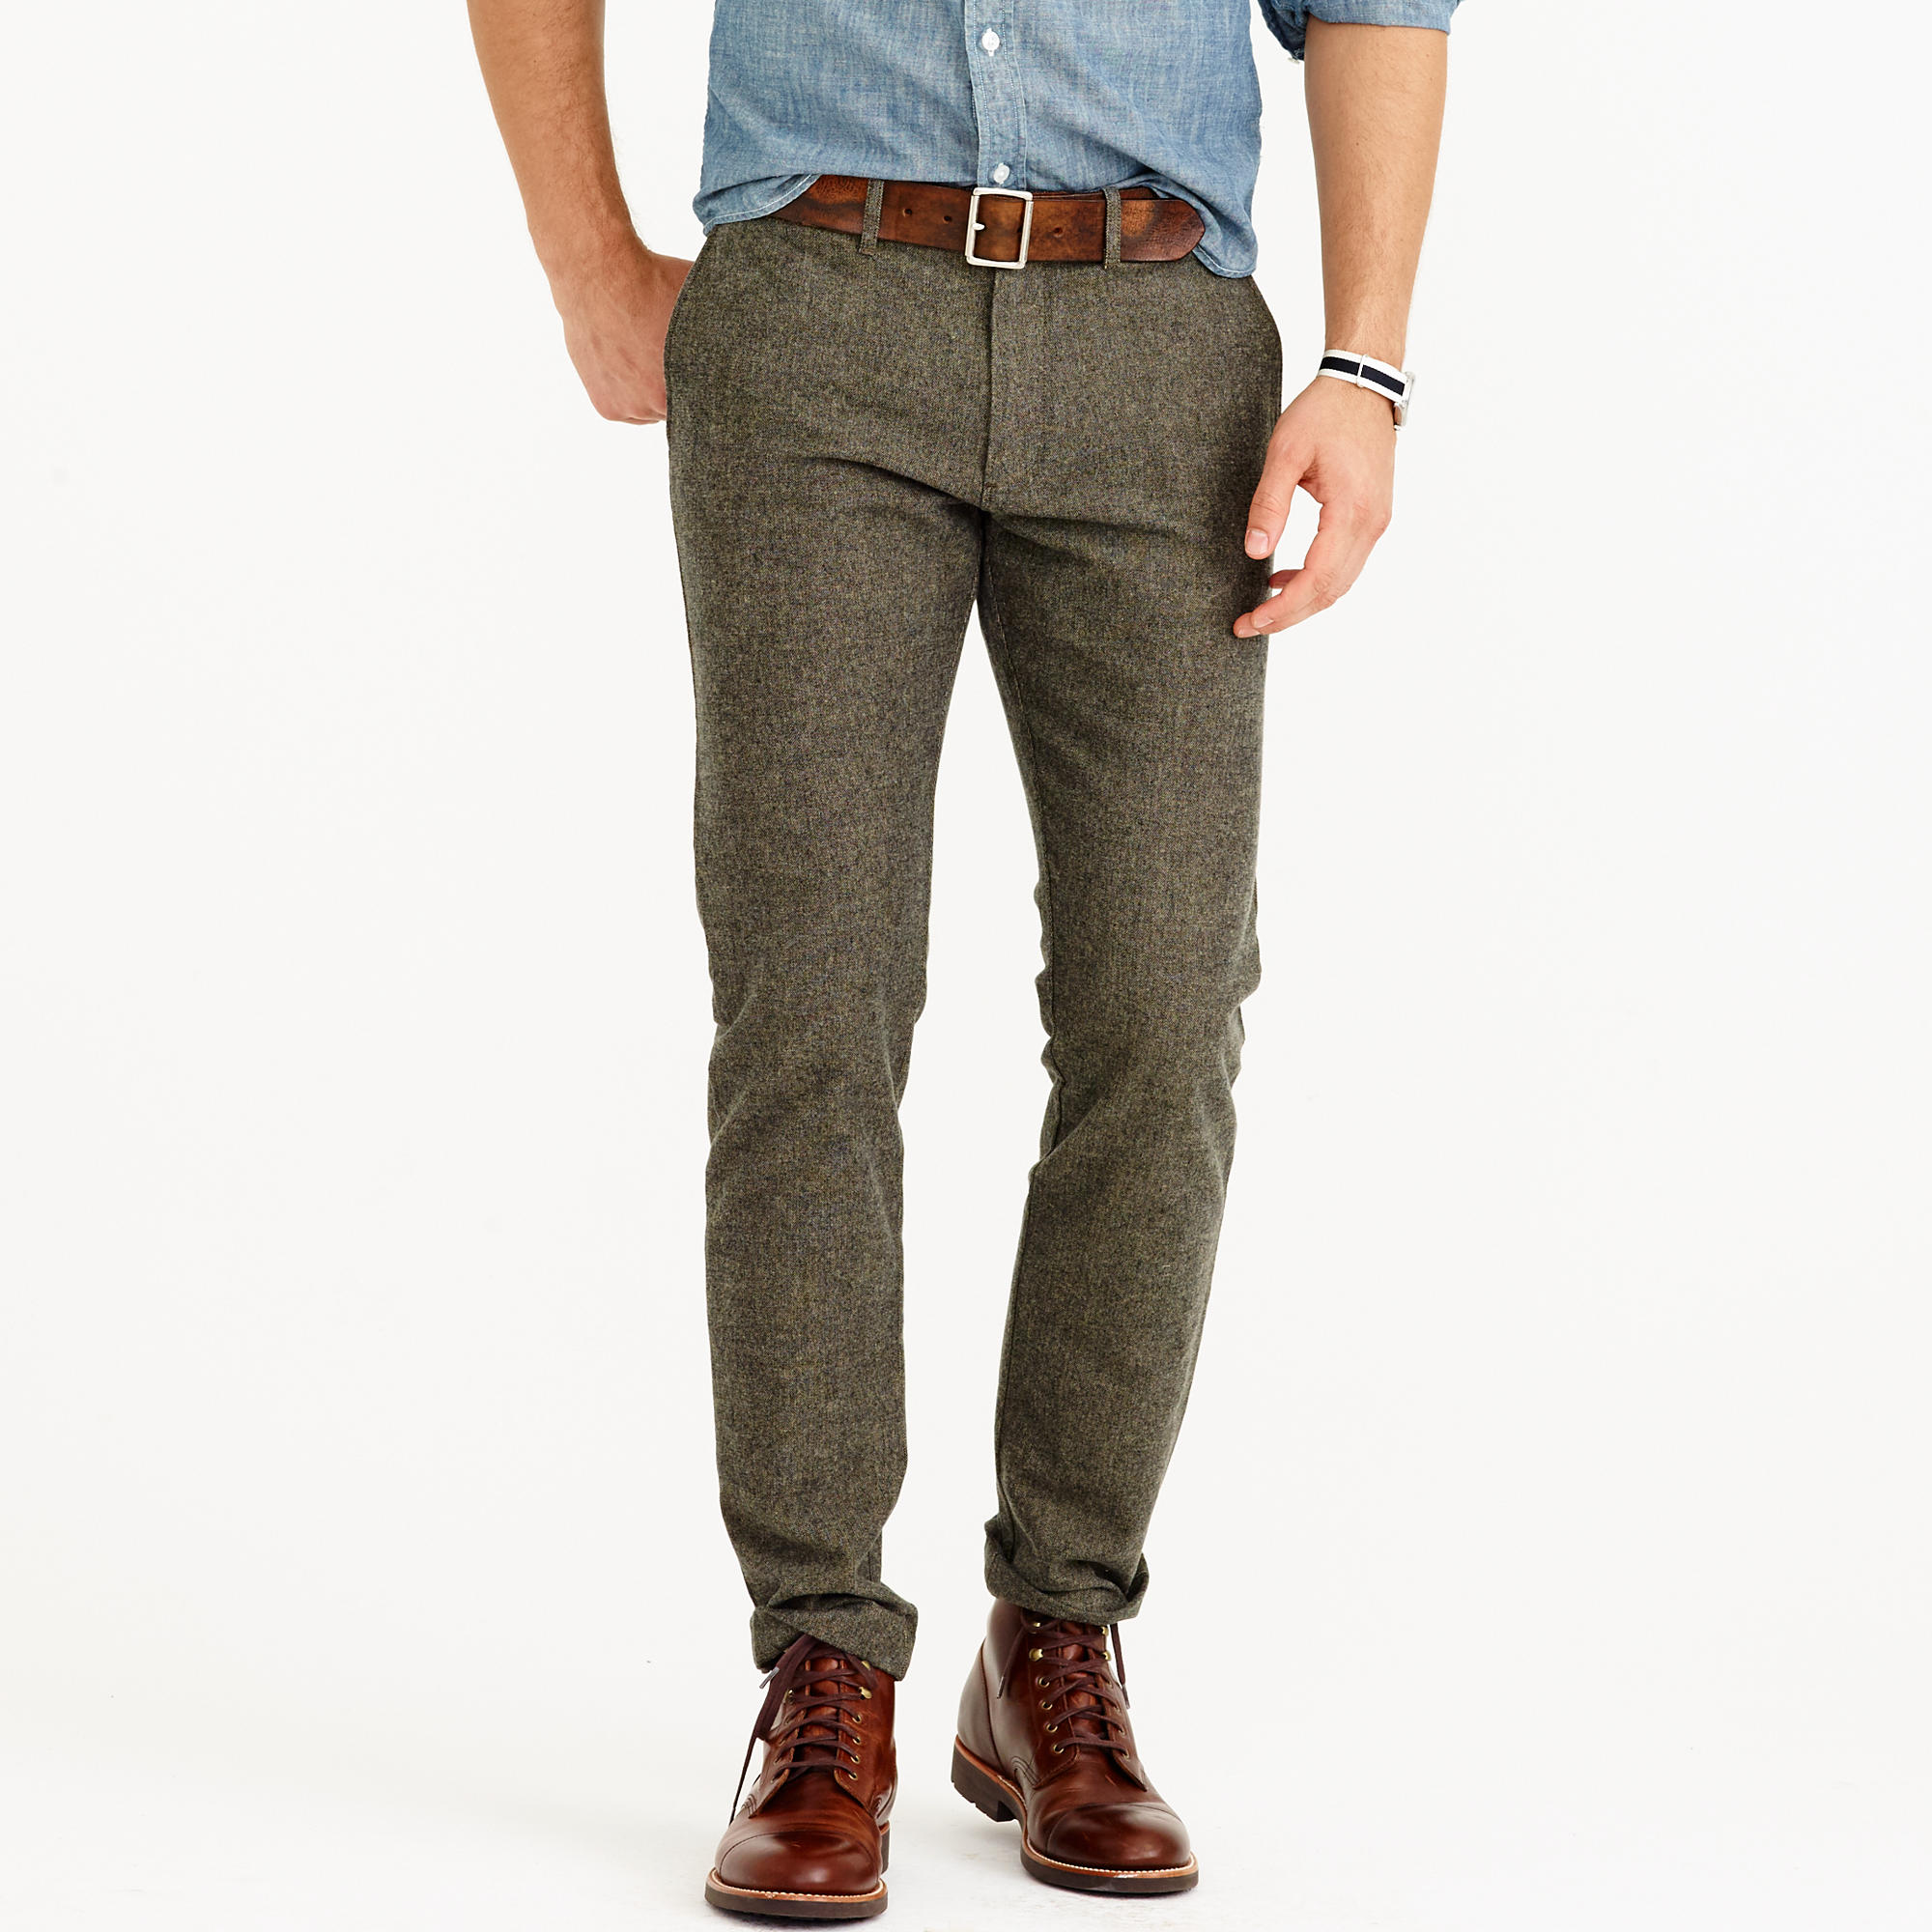 Brushed cotton twill mélange chino pant in 484 slim fit : | J.Crew